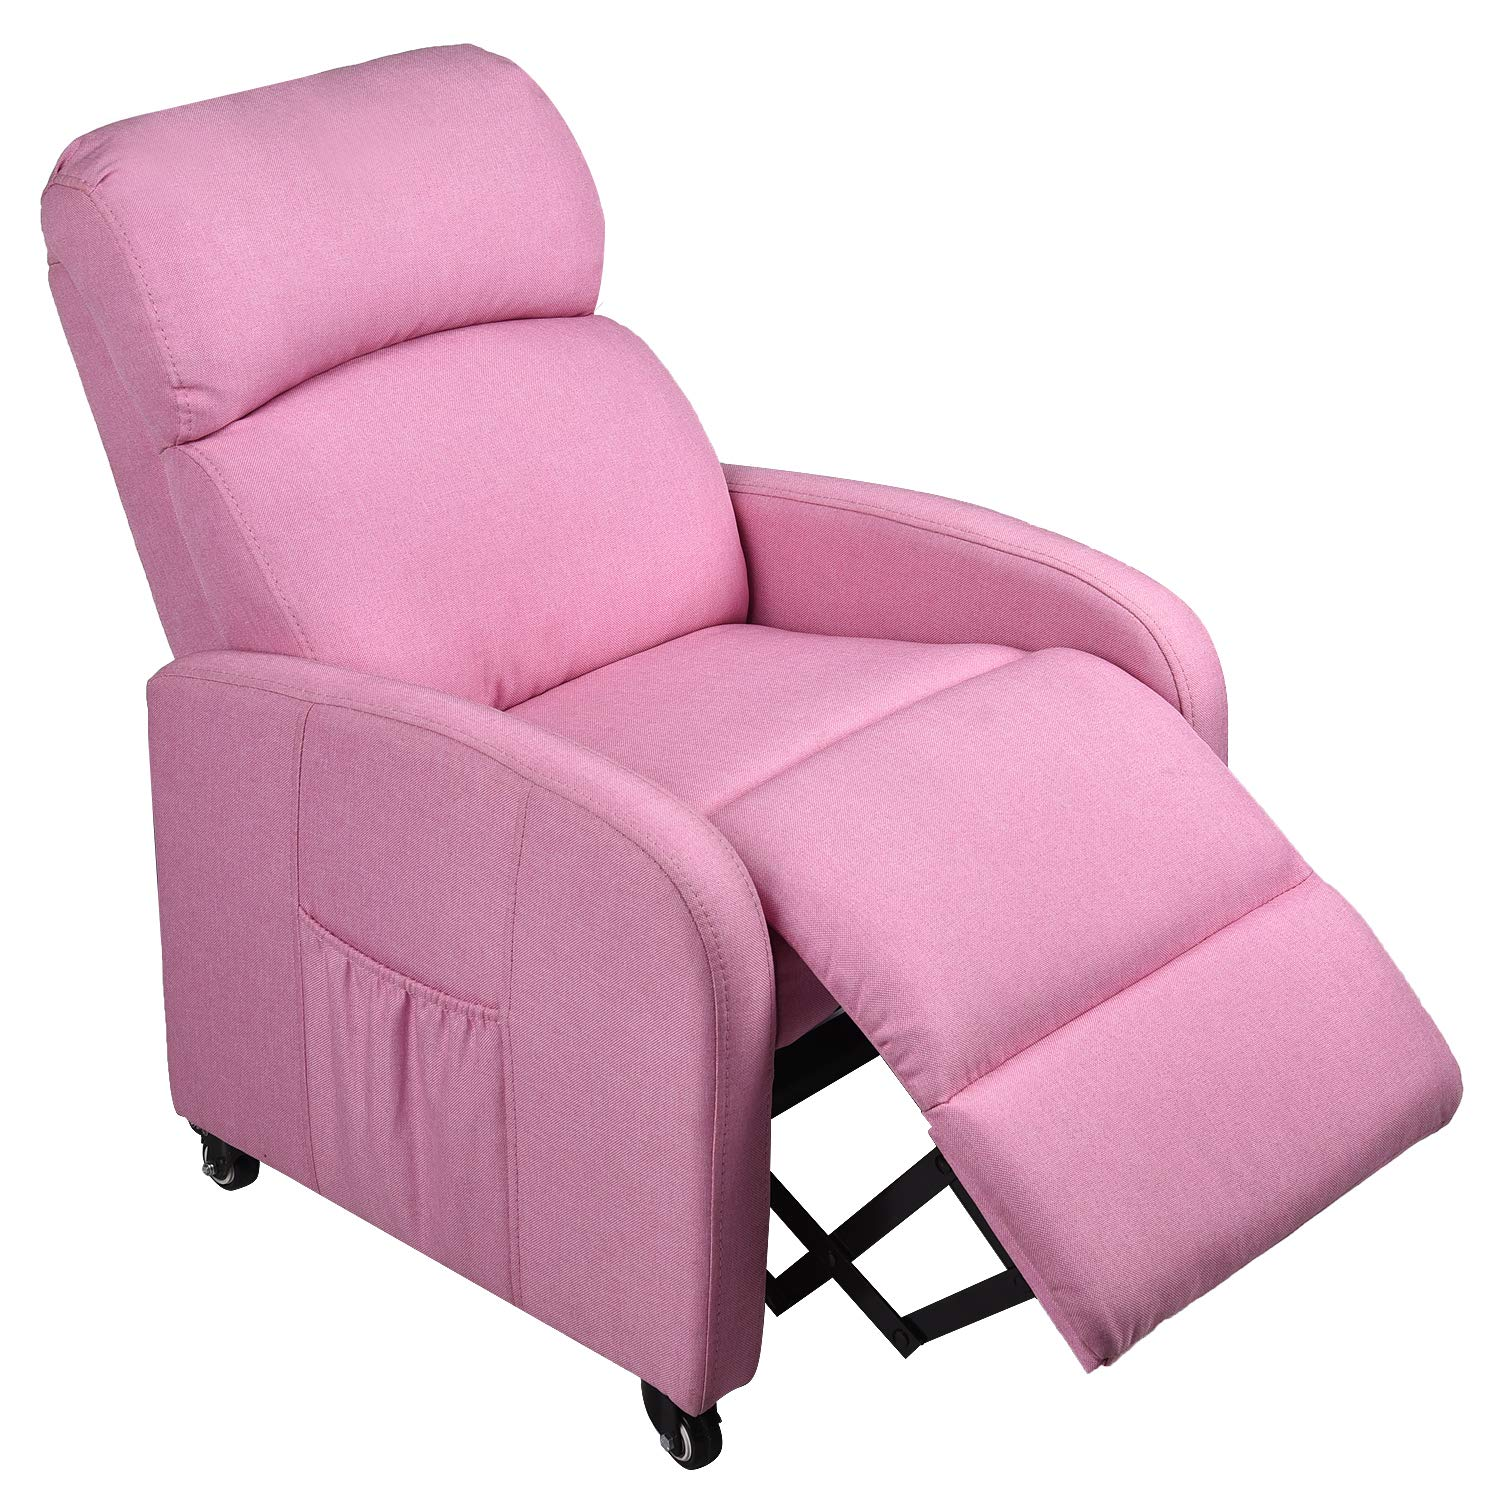 Pink Kids Sofa Recliner with Storage Bag and Locked Wheels for Boys Girls, Ergonomic Contemporary Children Living Room Sofa Recliner by YOURLITE